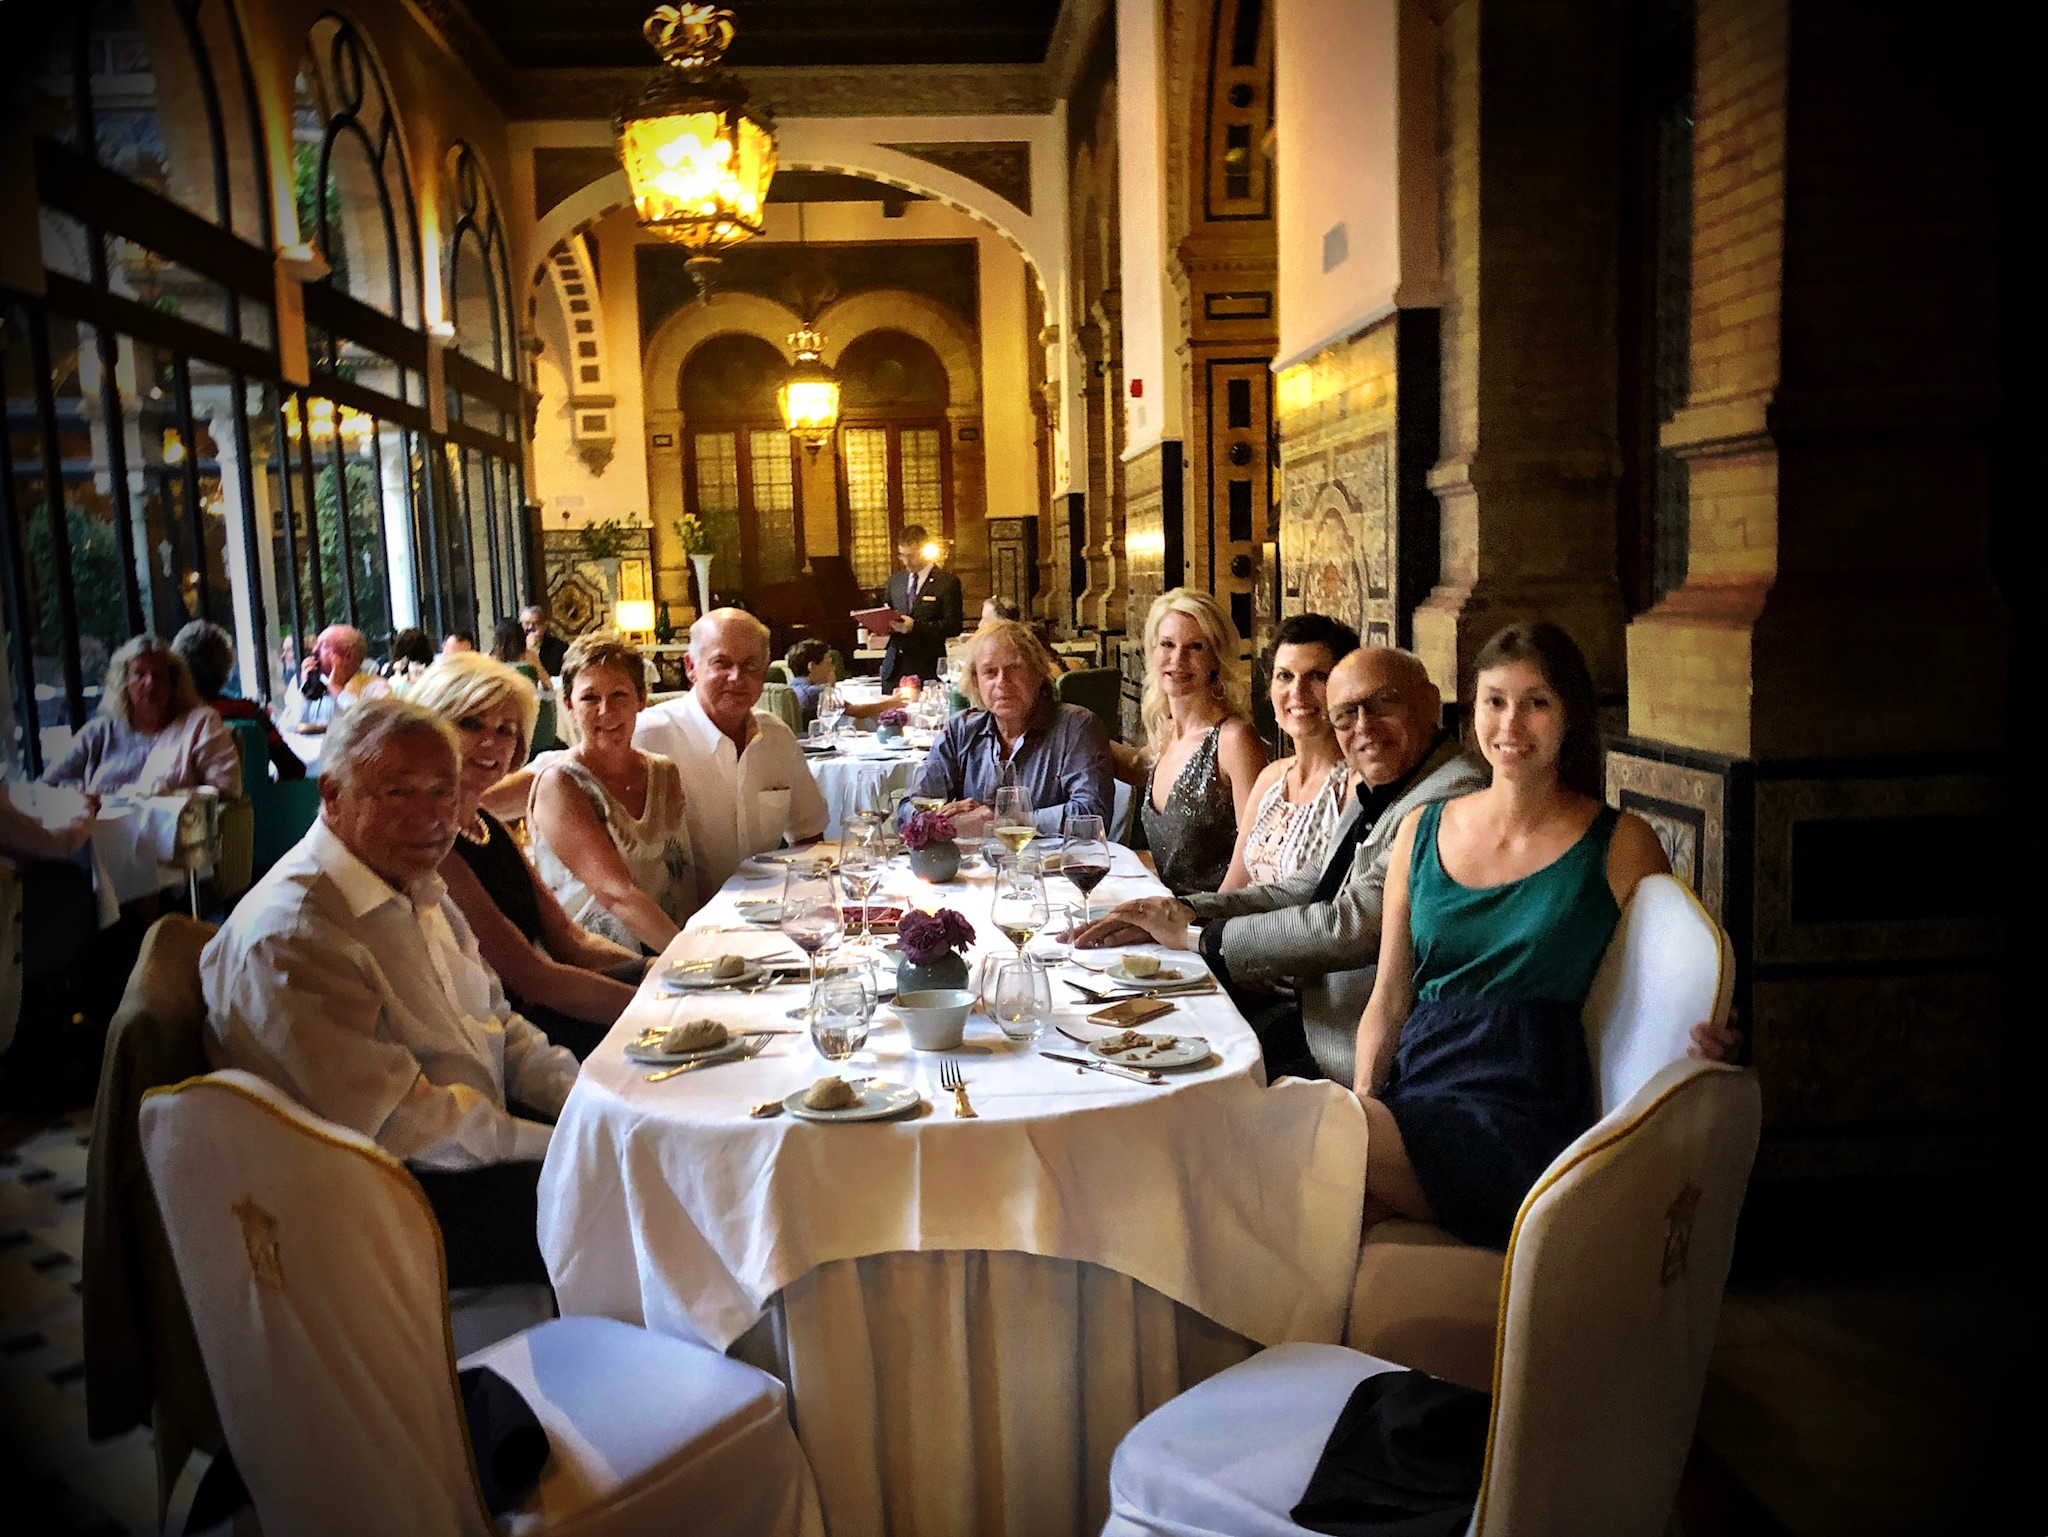 The Spain 2018 Travelers in Sevilla